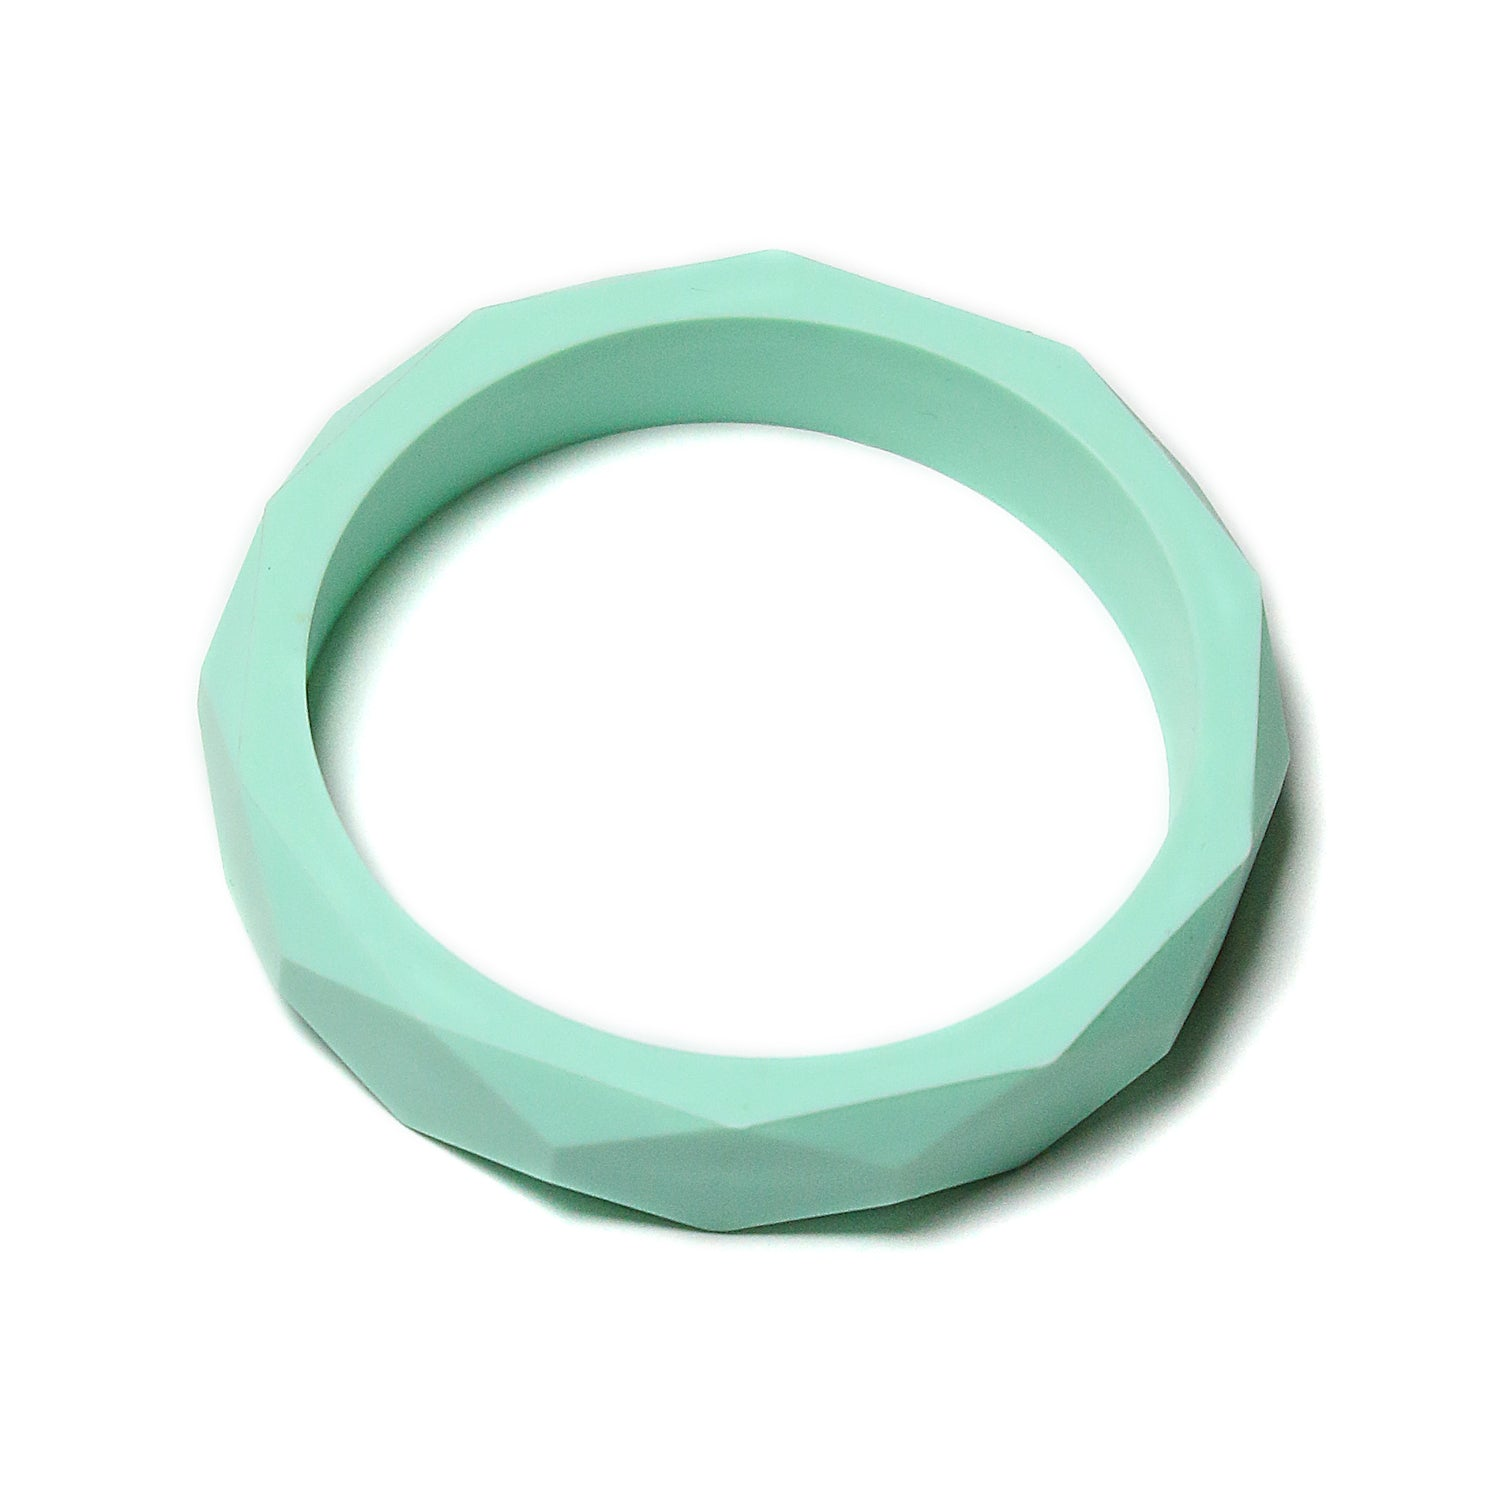 Finley Mint Silicone Teething Jewelry